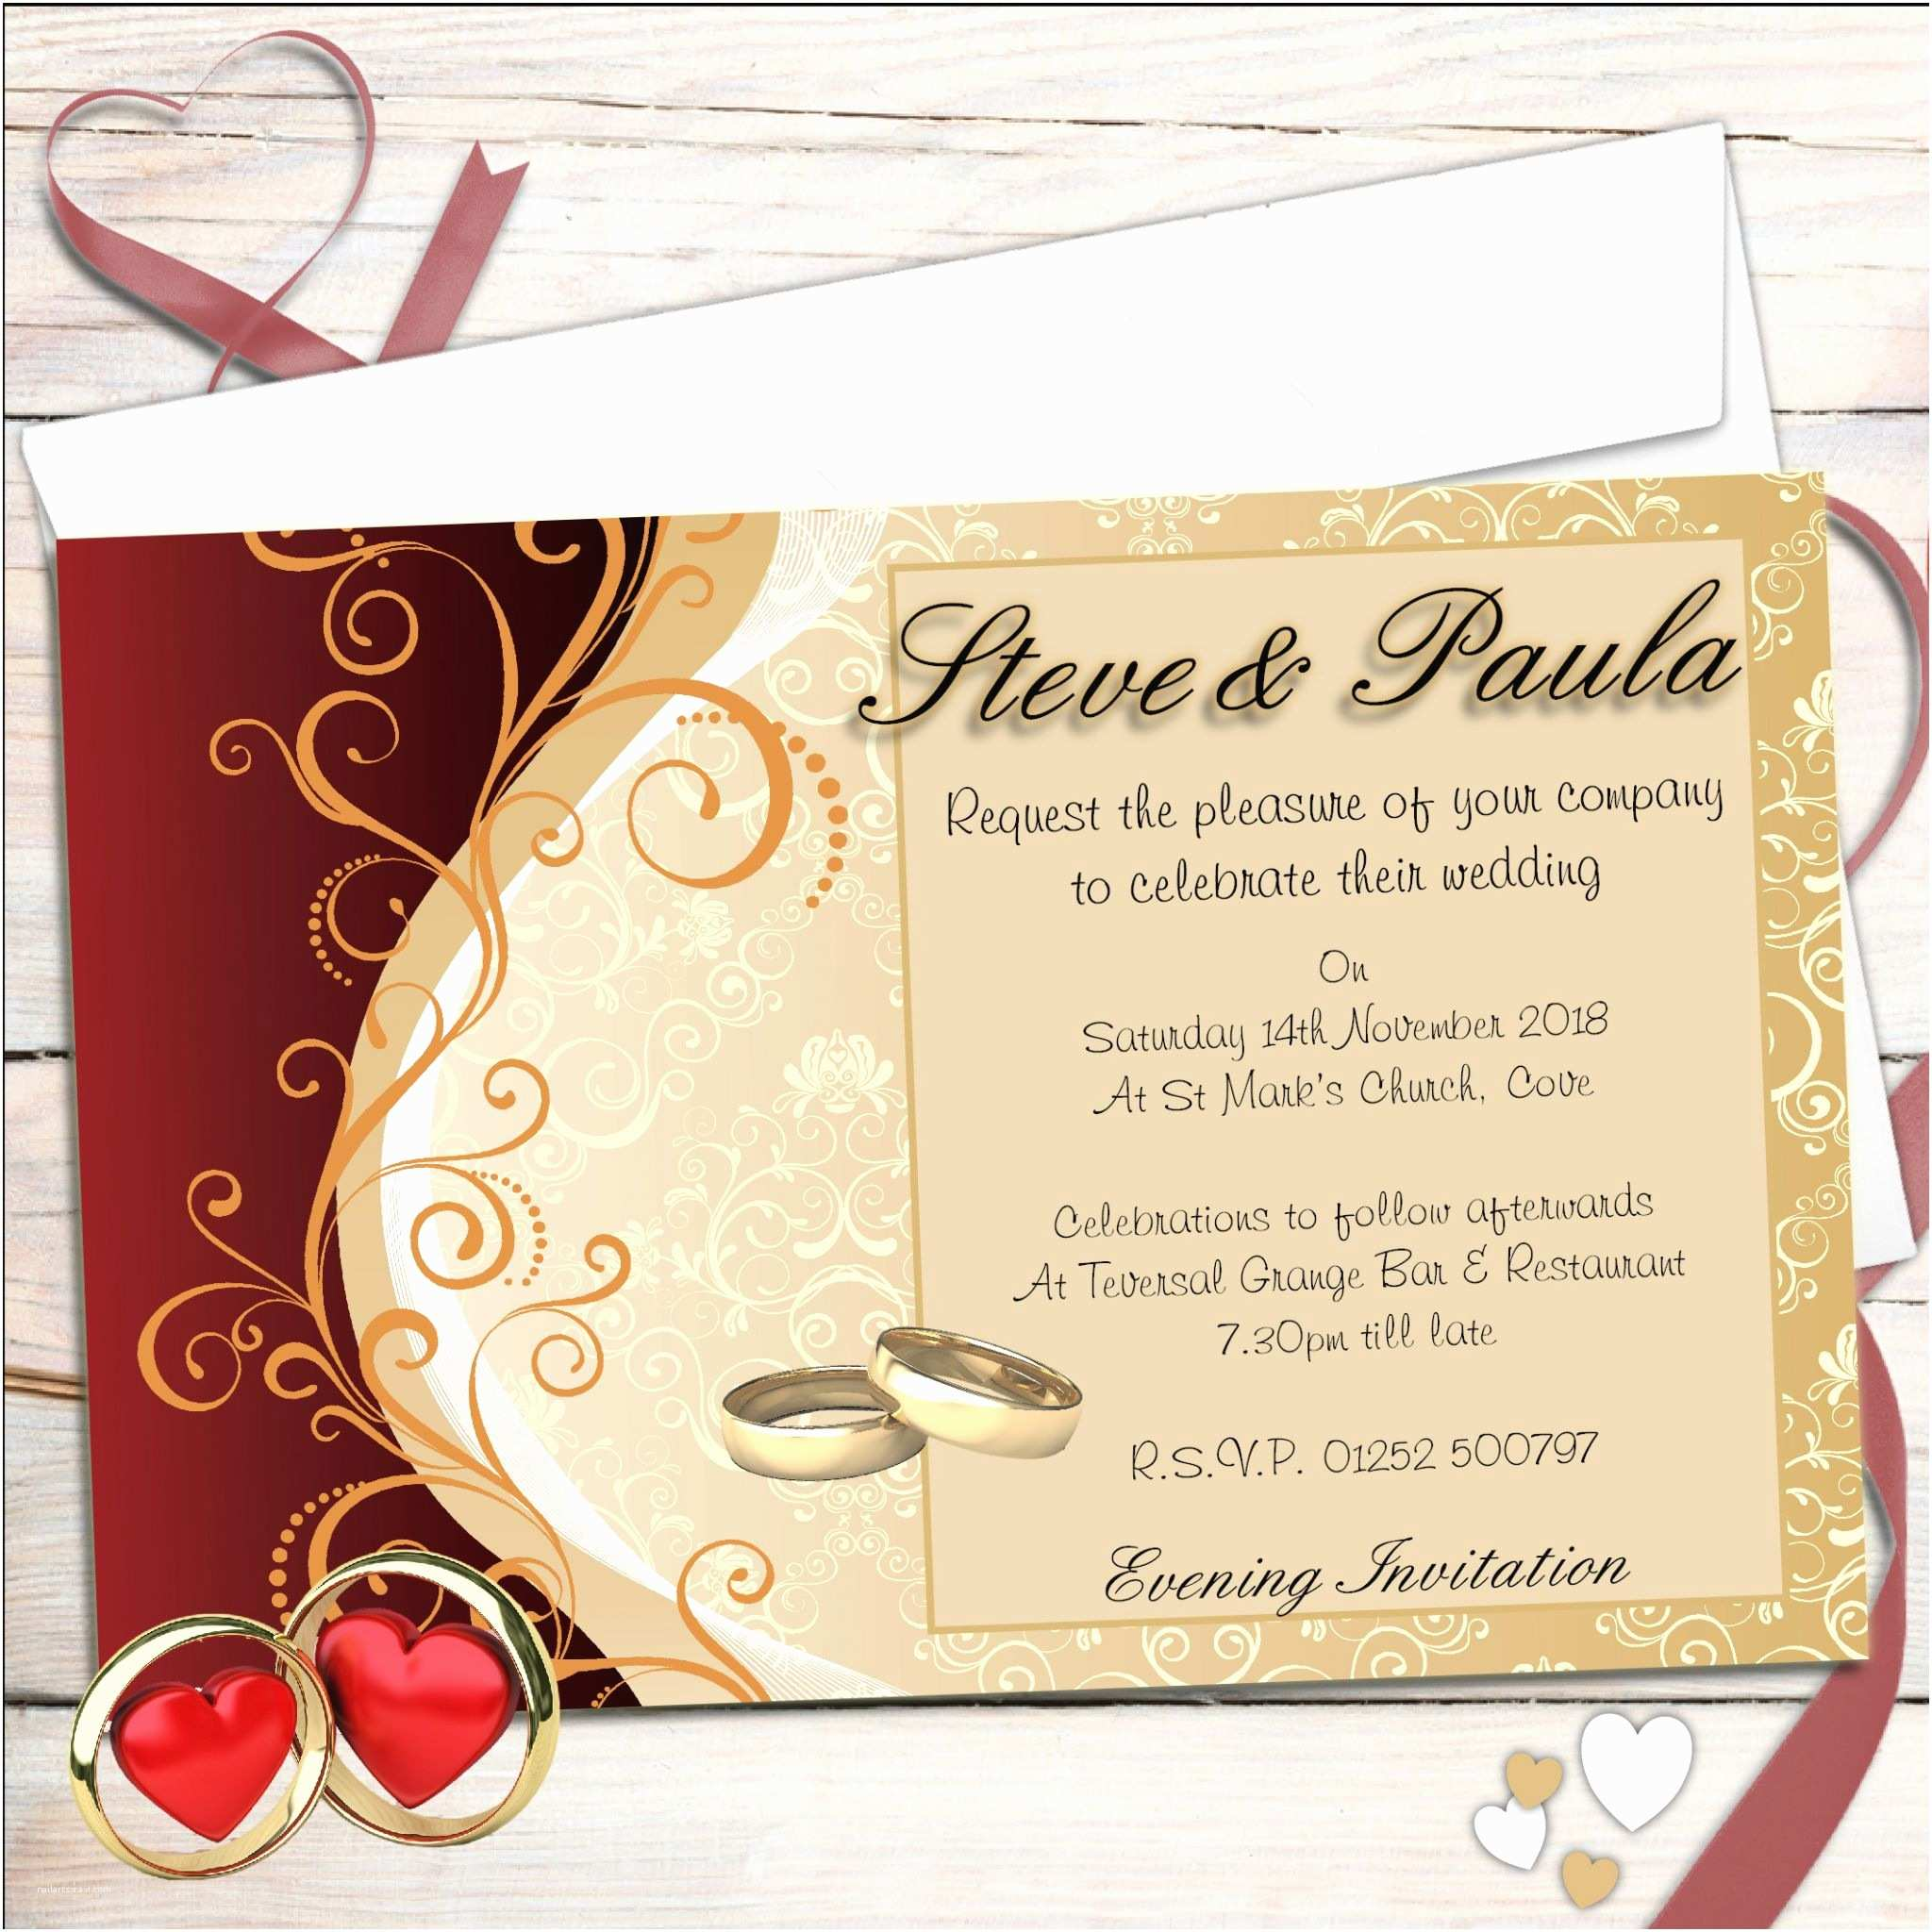 Red White and Gold Wedding Invitations 10 Personalised Red & Gold Wedding Invitations Day evening N33